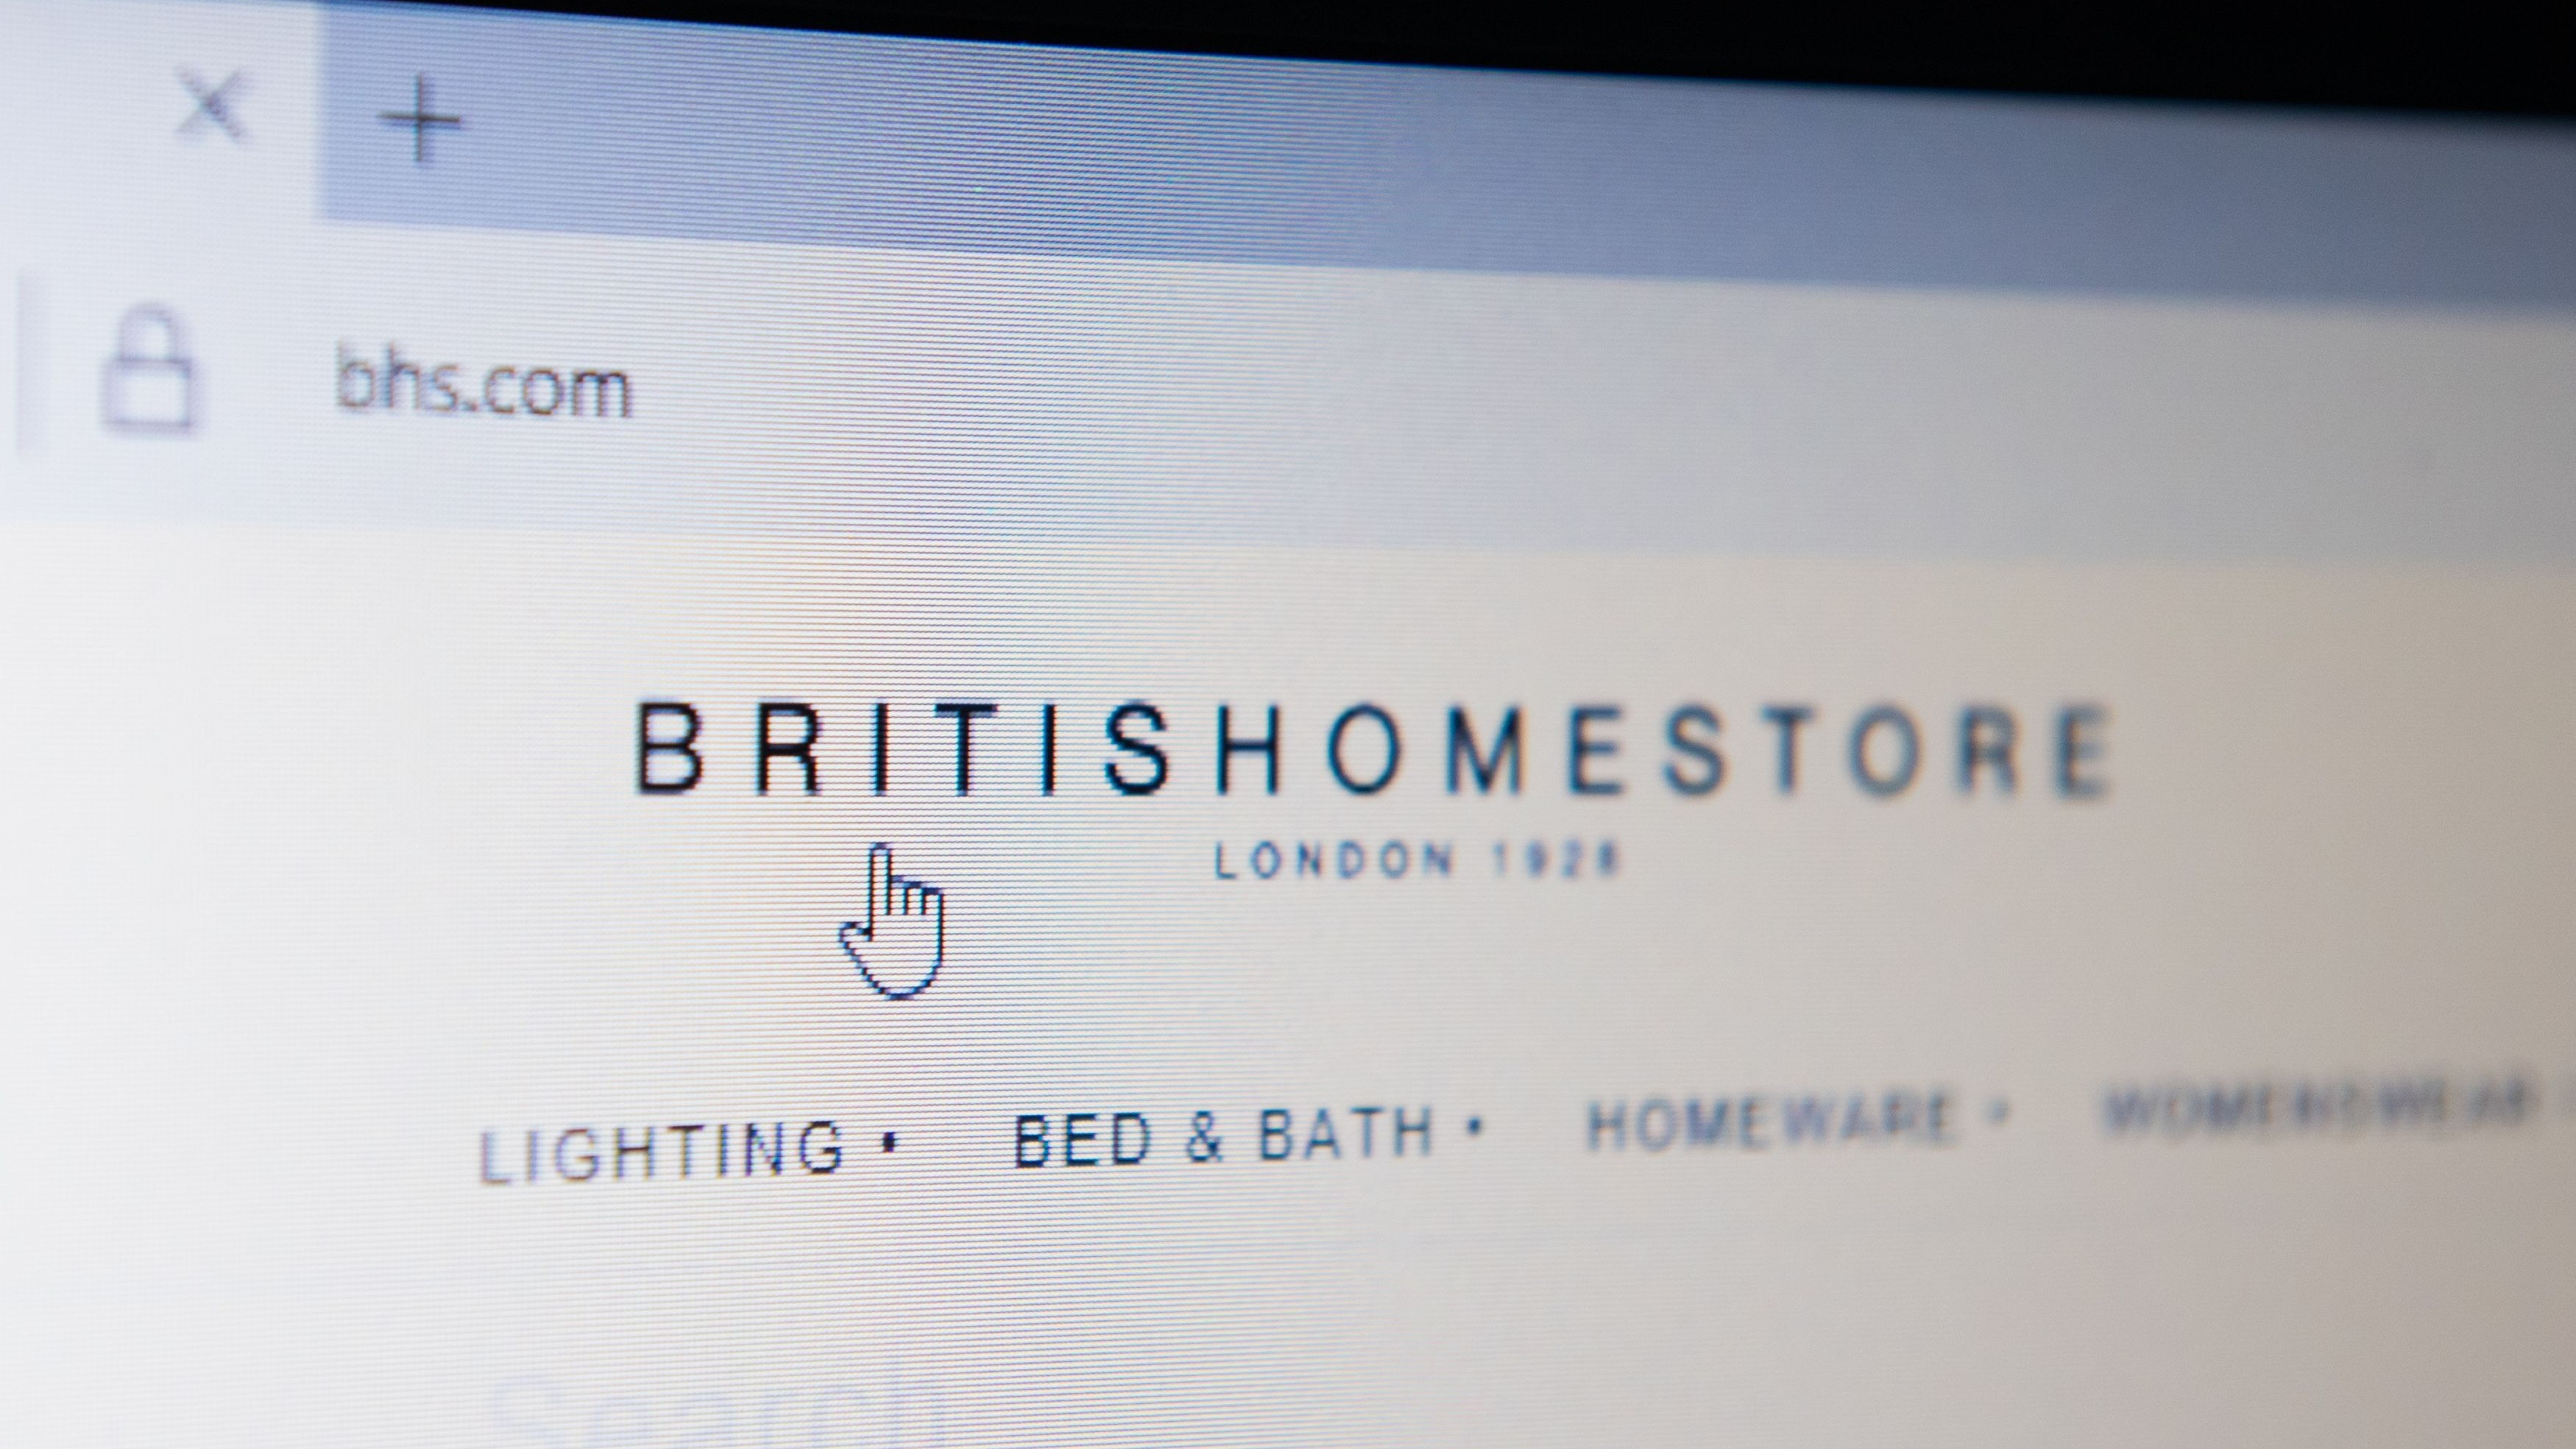 BHS.com owner to shut down website as focus shifts to international ...